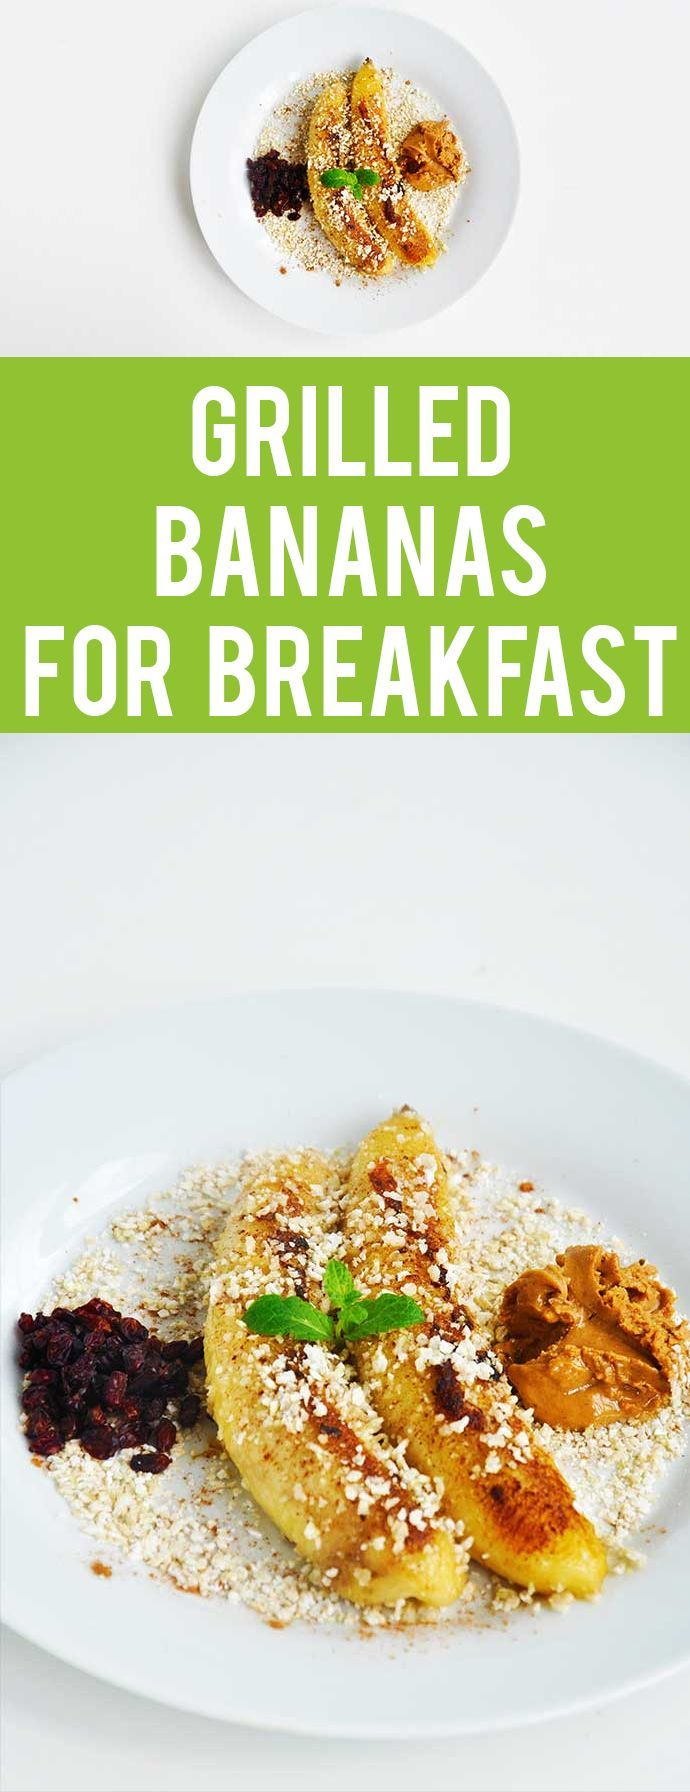 Grilled bananas - This is the best sweet breakfast you will ever make! It's ready in 5 minutes and has everything a healthy breakfast should have!